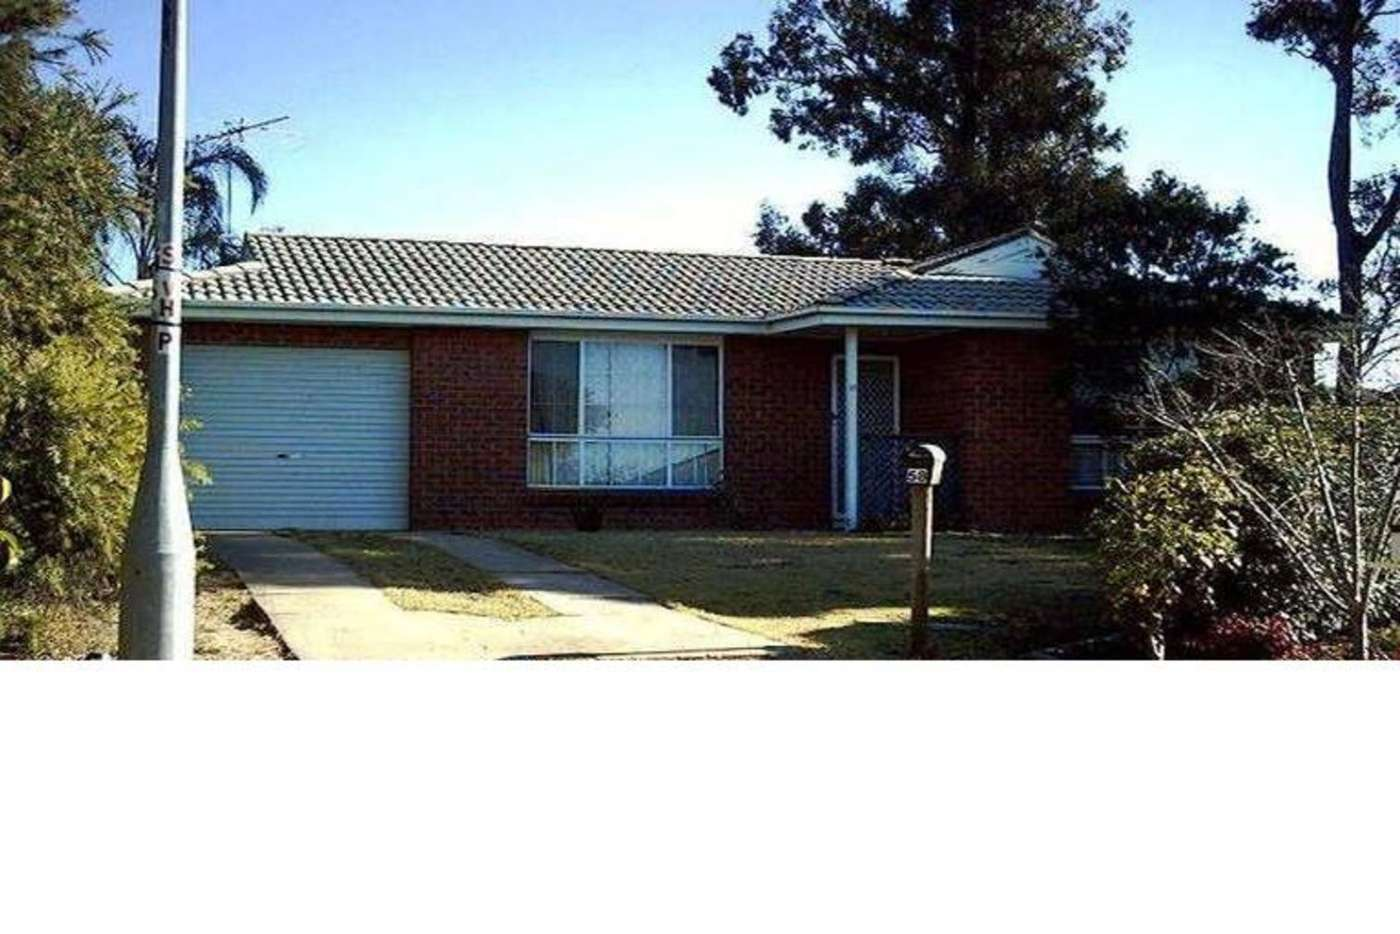 Main view of Homely house listing, 58 Explorers Way, St Clair NSW 2759